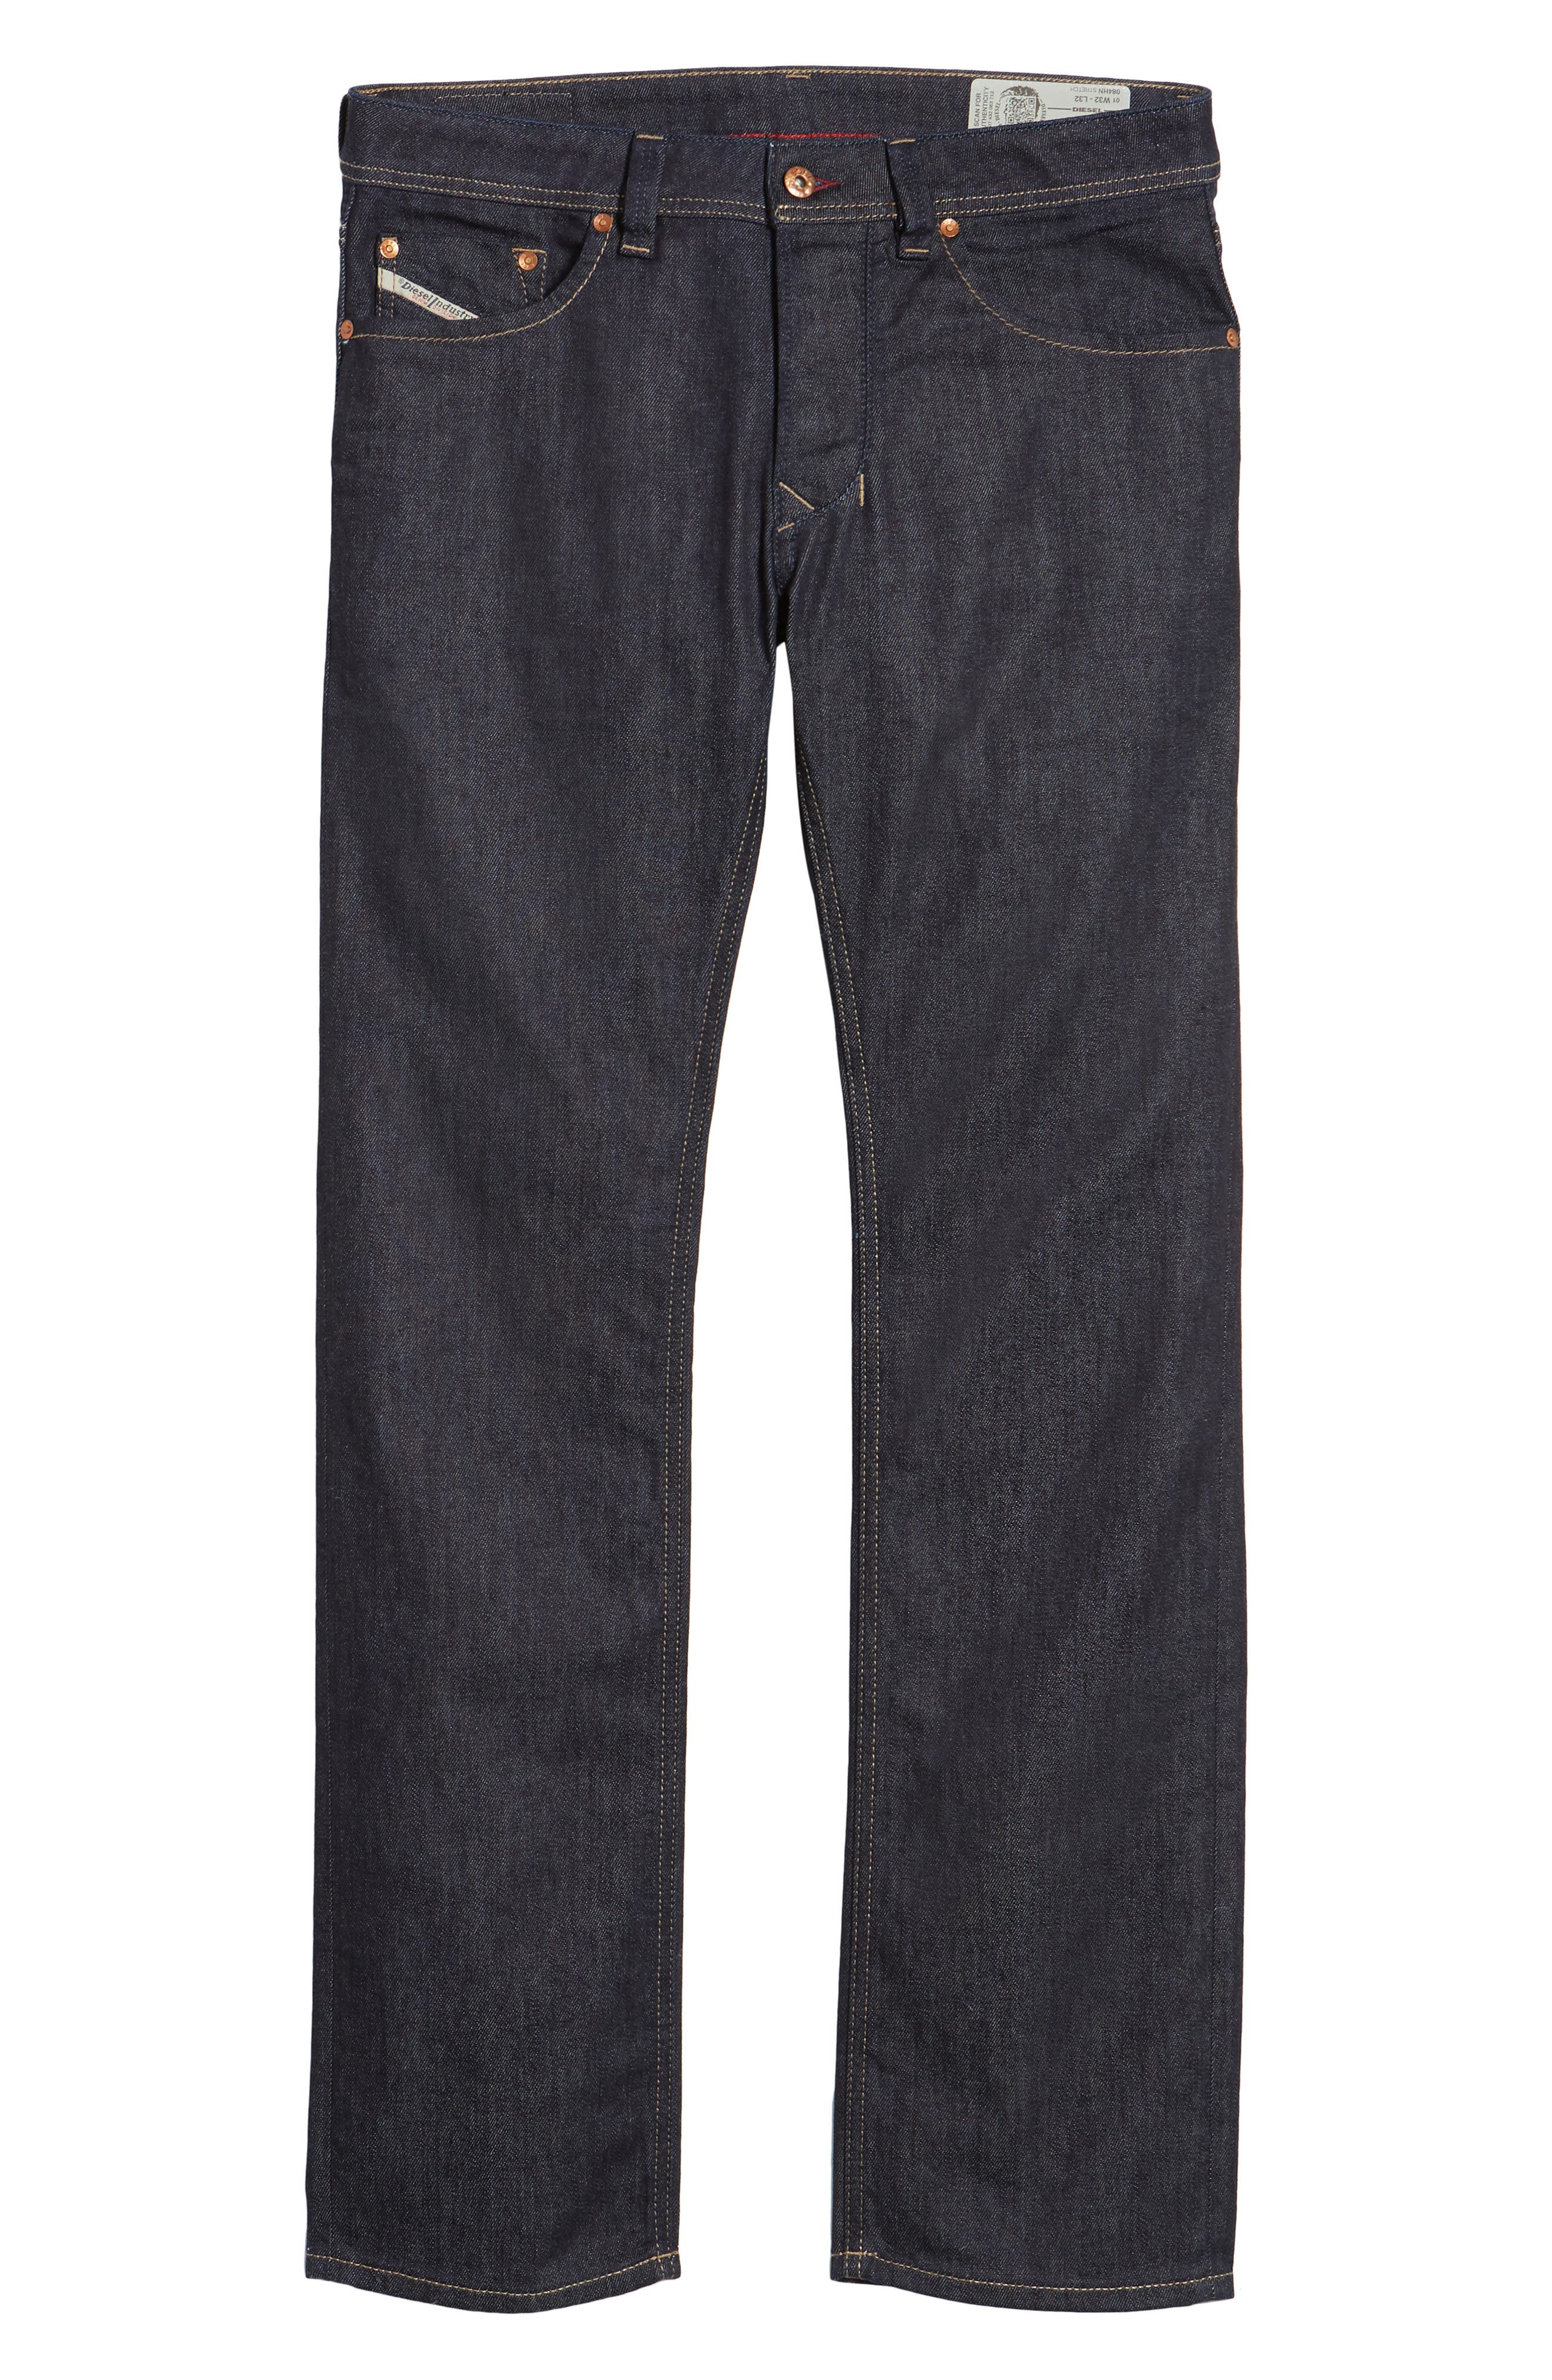 Larkee Relaxed Fit Jeans,                             Alternate thumbnail 6, color,                             Blue